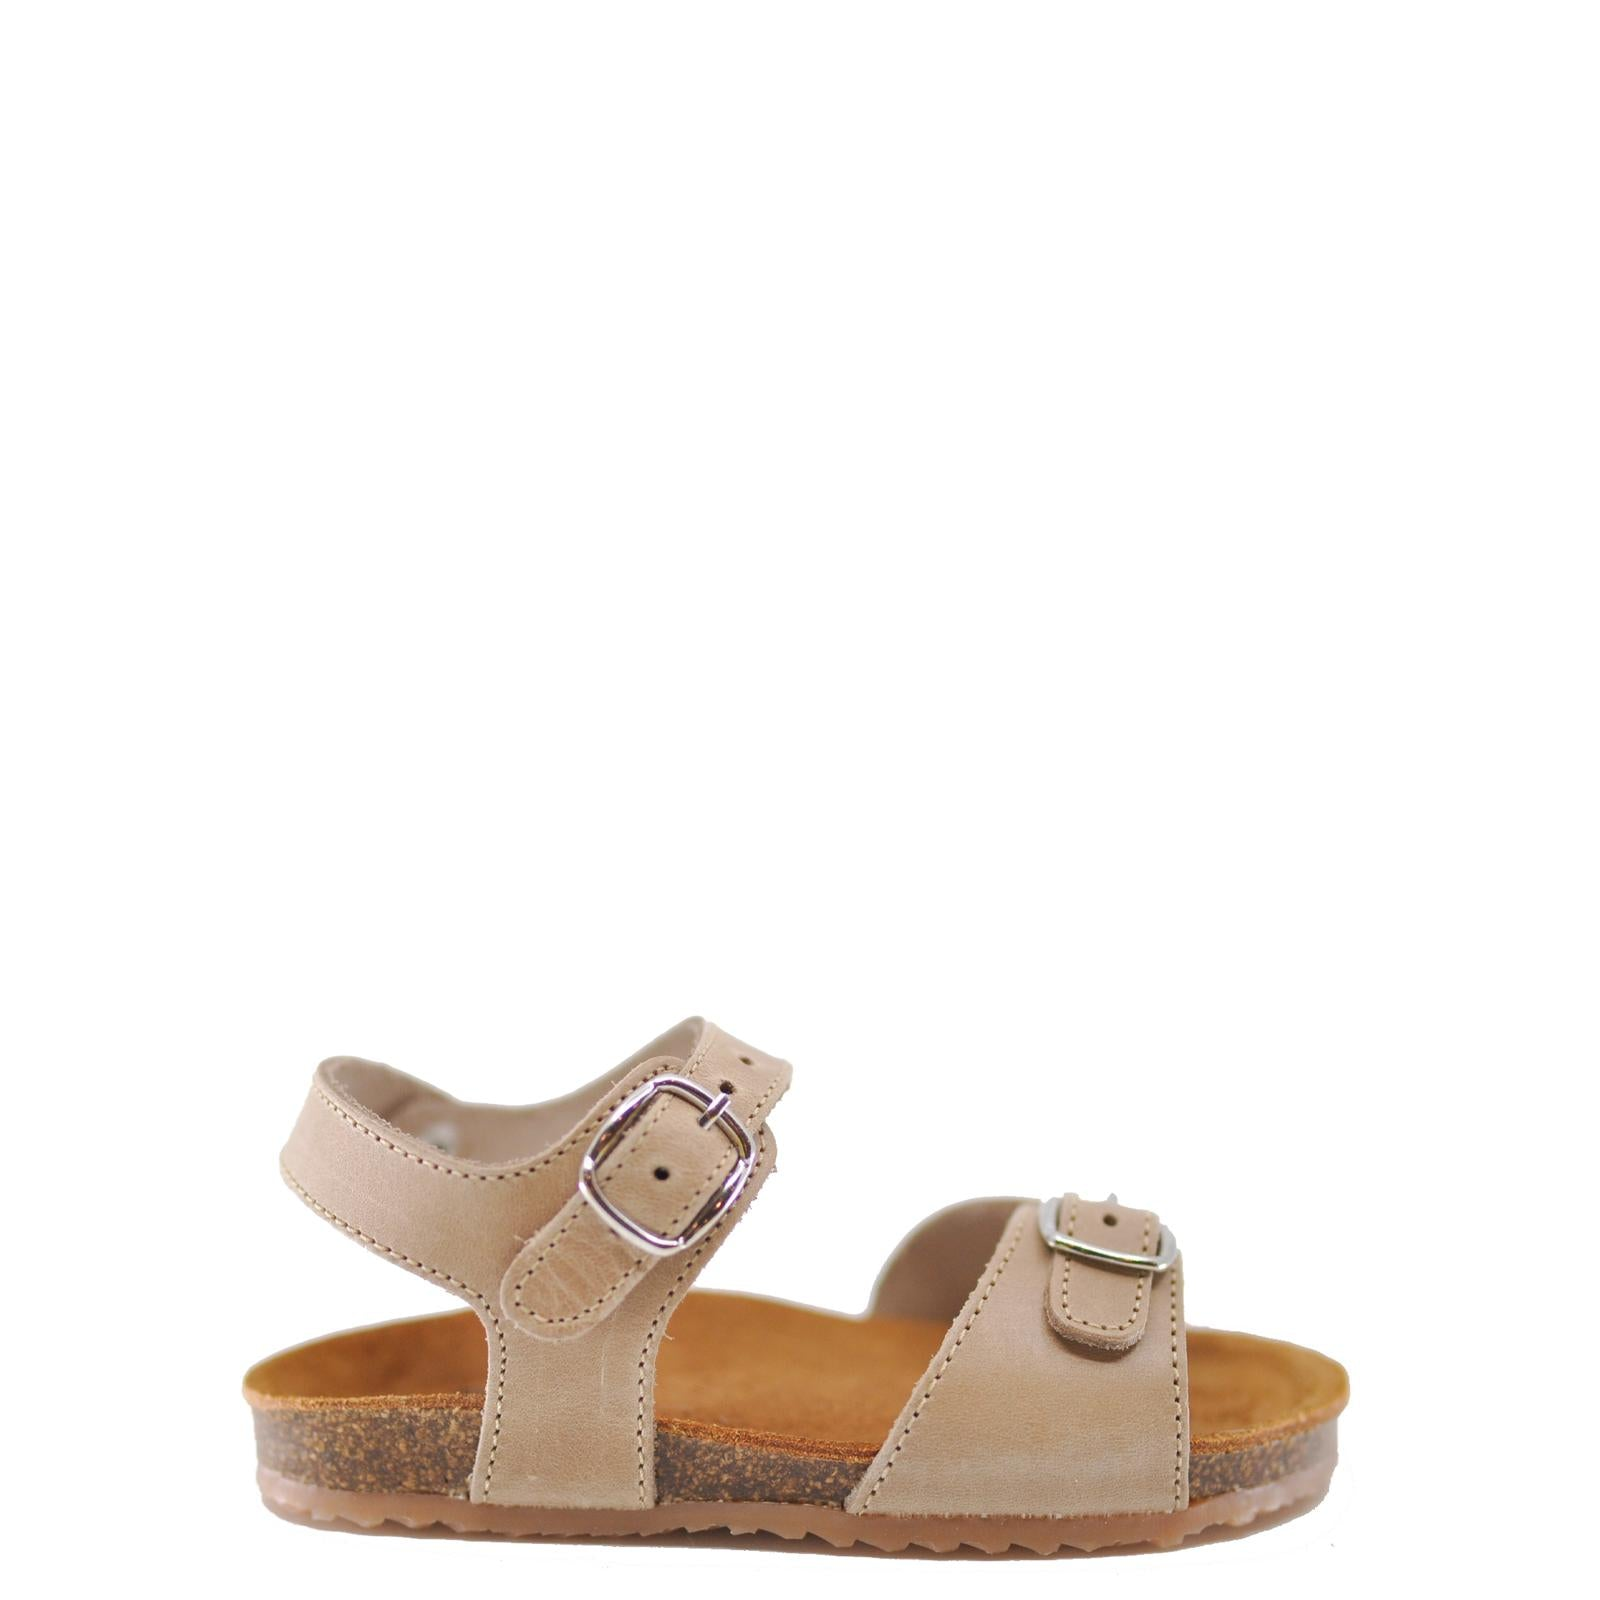 Pepe Sand Leather Sandal-Tassel Children Shoes